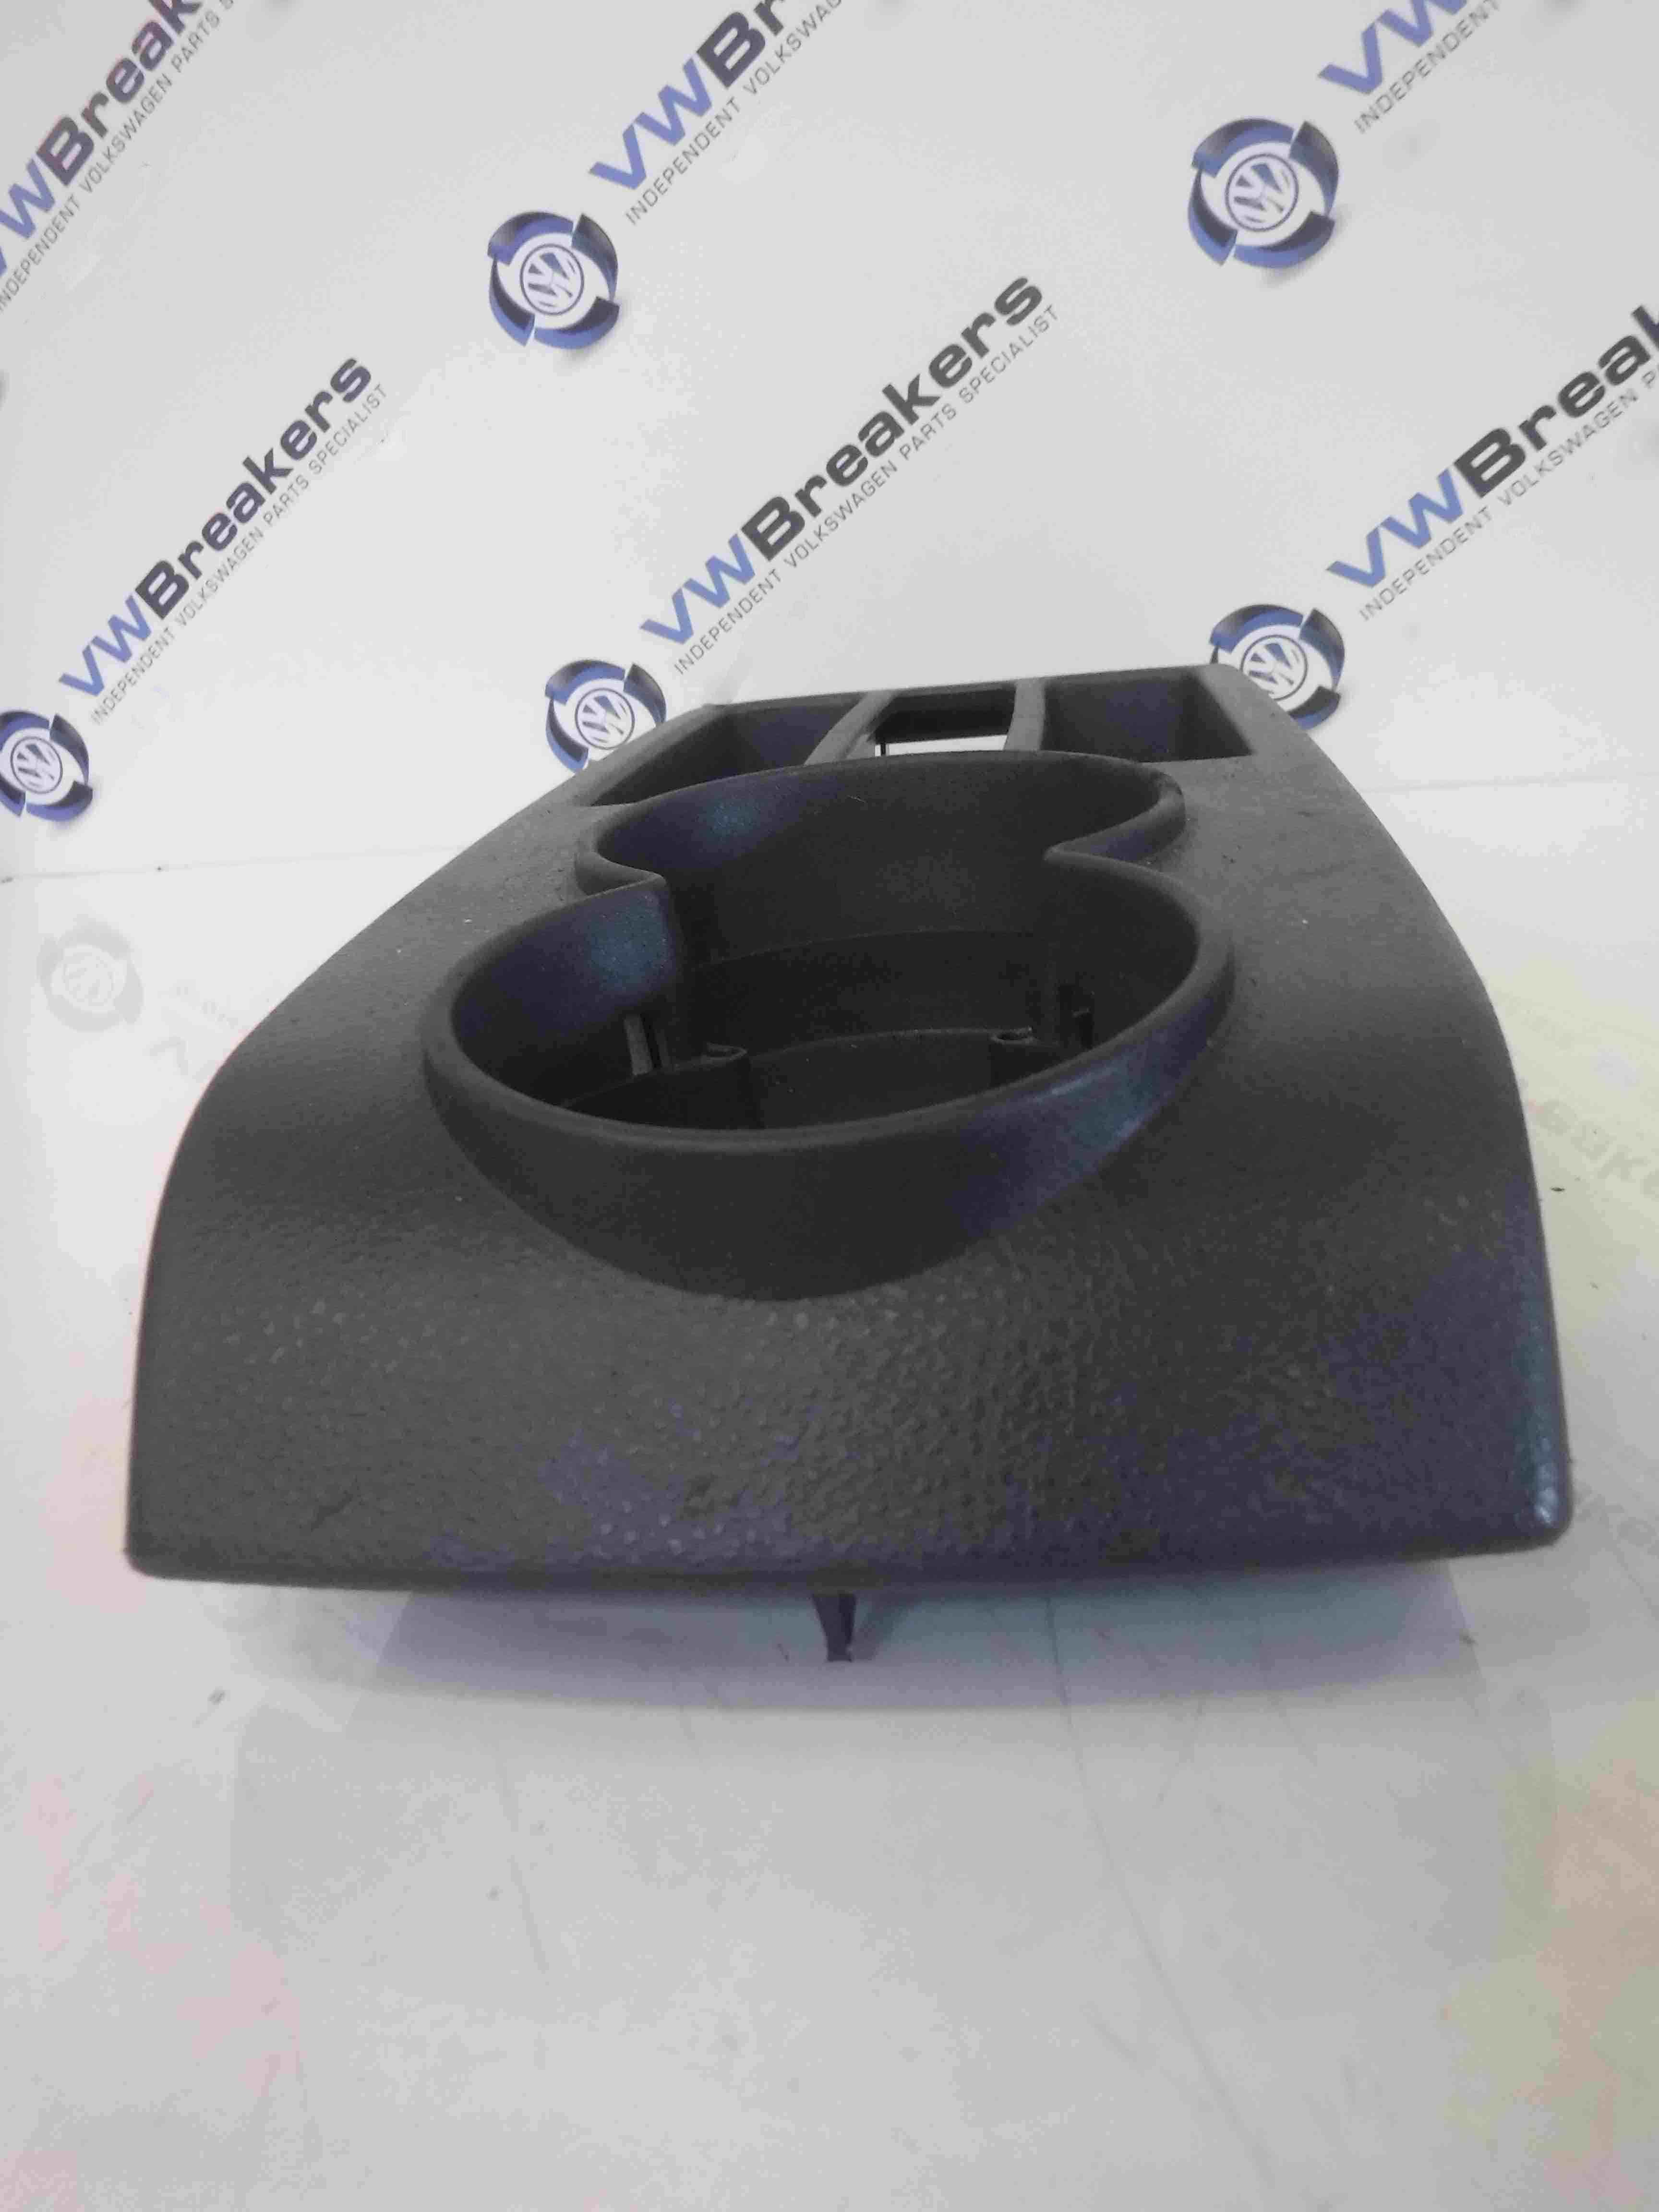 Volkswagen Polo 2006-2008 9N3 Centre Console Cup Holder 6Q0863319H